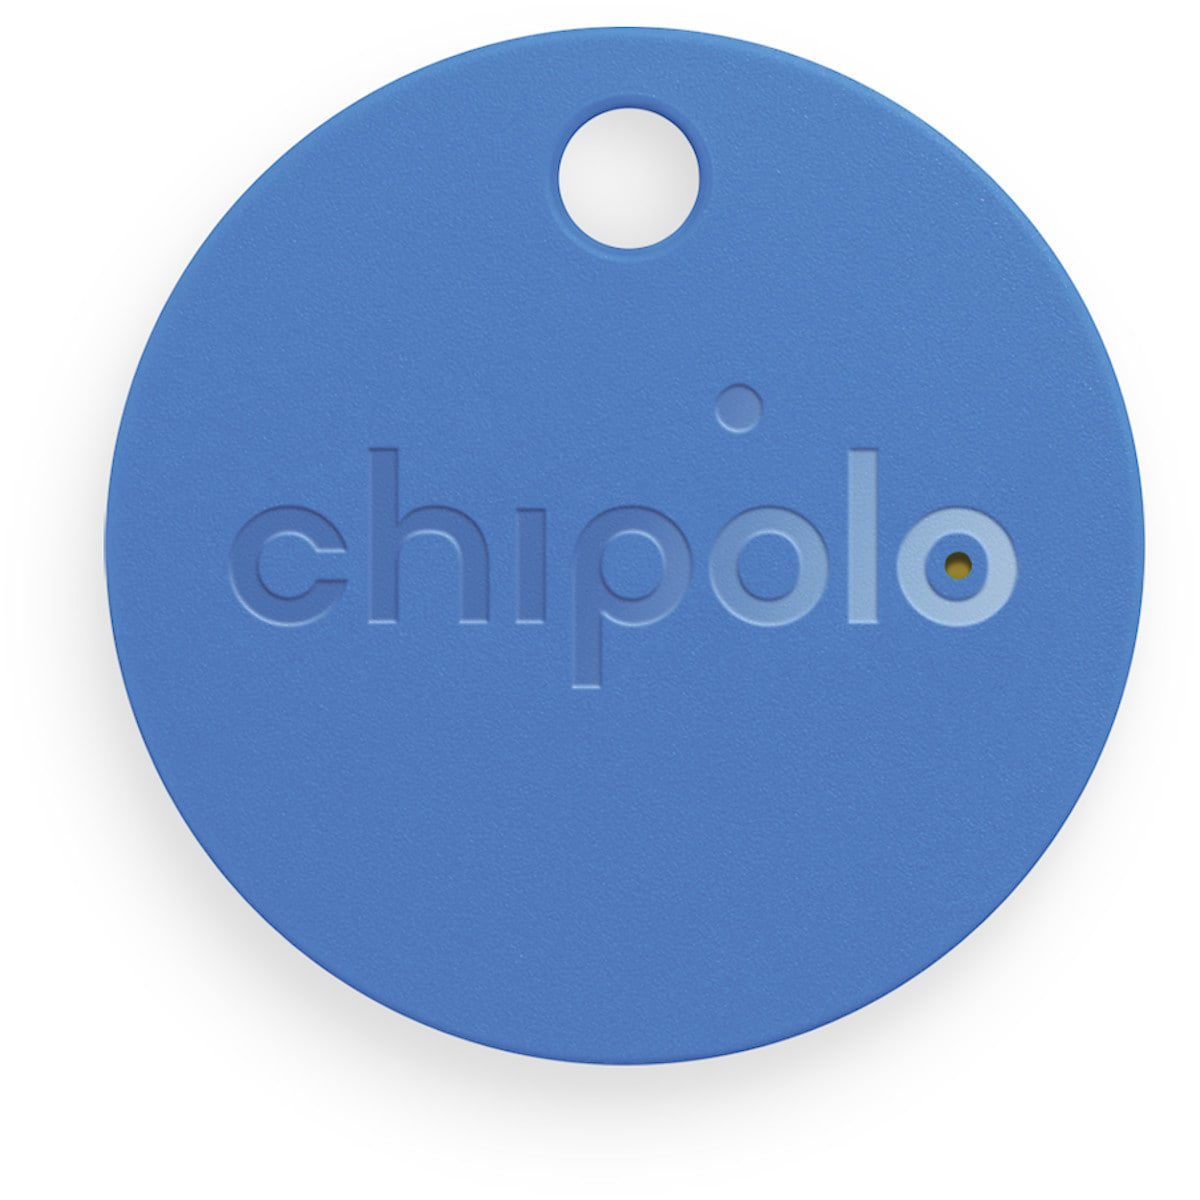 Key Finder, Chipolo Classic